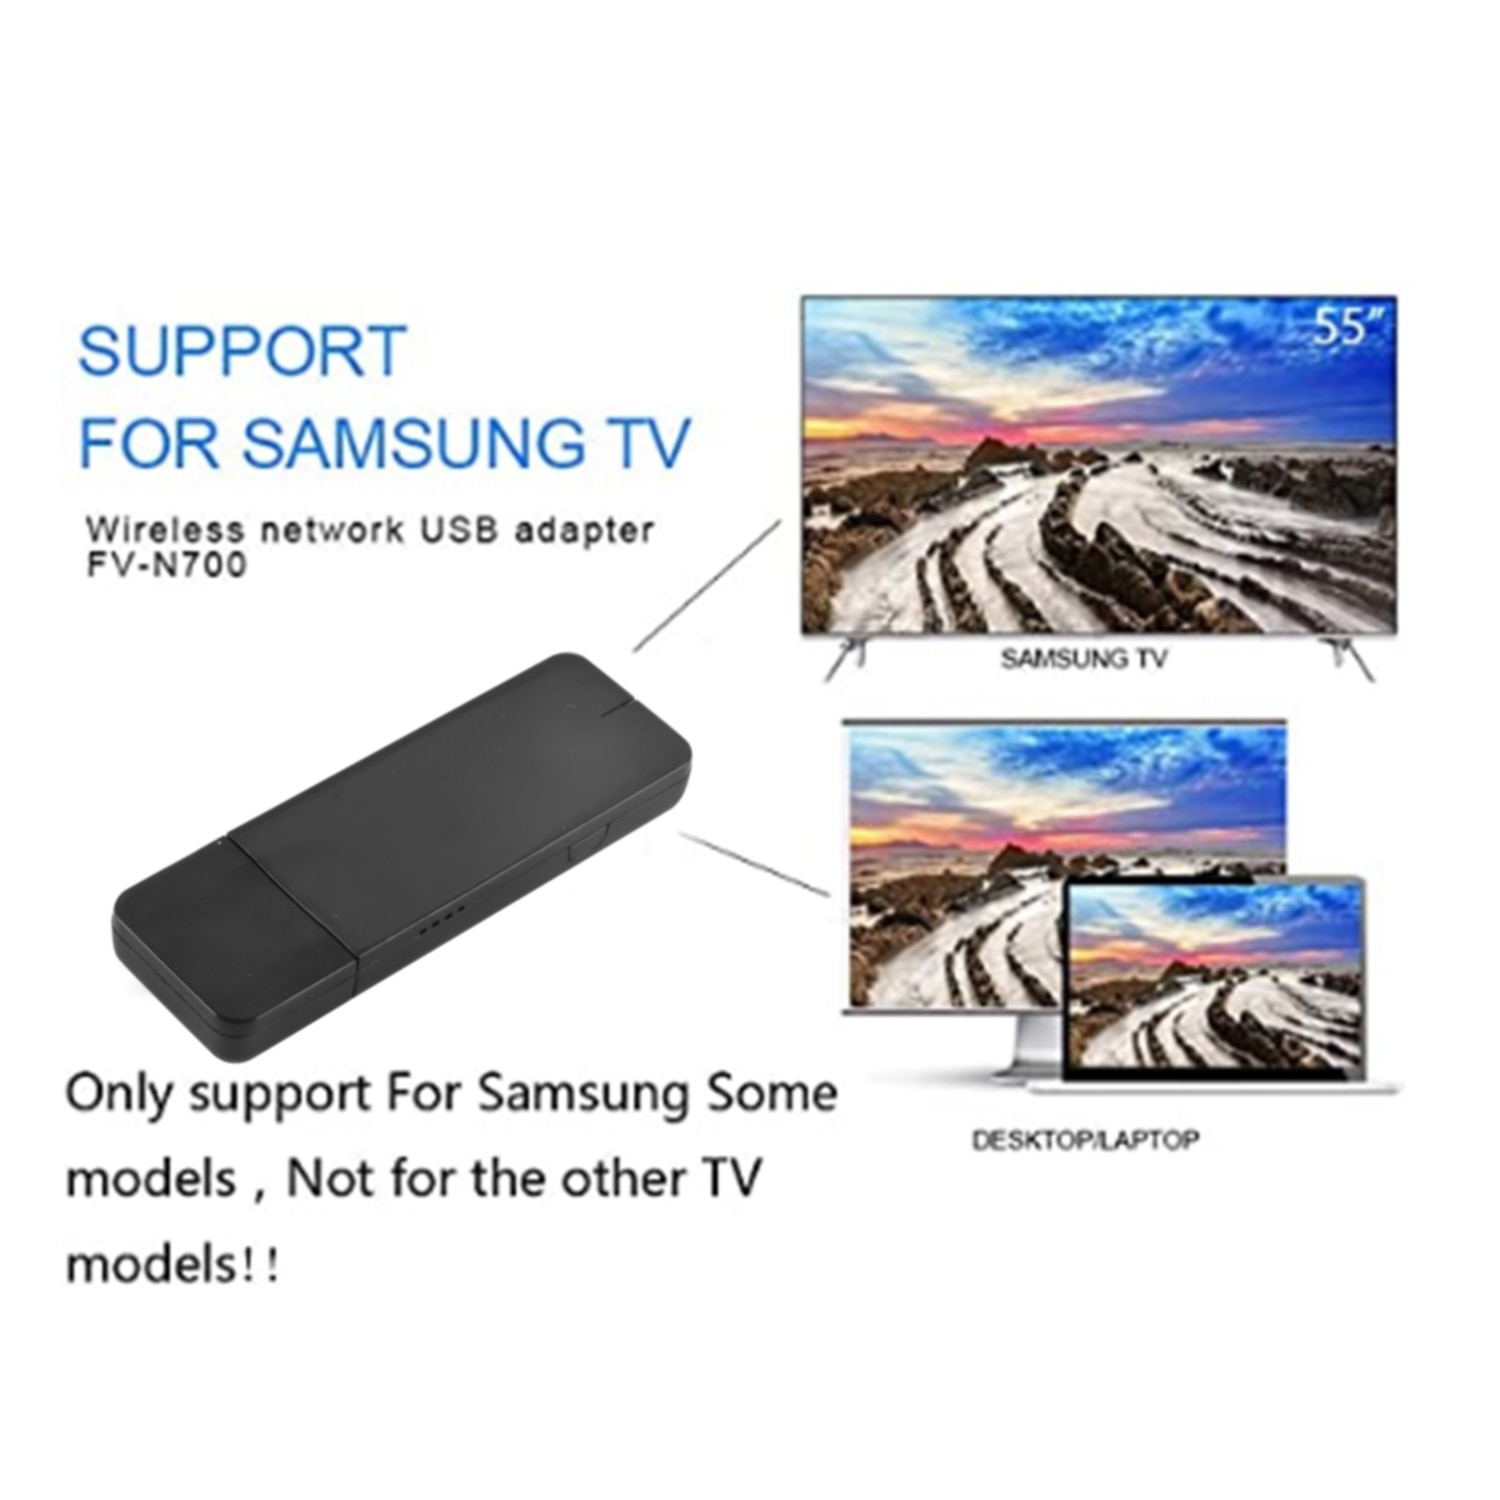 Mini WLAN Lan USB Adapter For Smart TV Samsung WIS12ABGNX WIS09ABGN 5G 300Mbps Wifi Adapter For Lapt